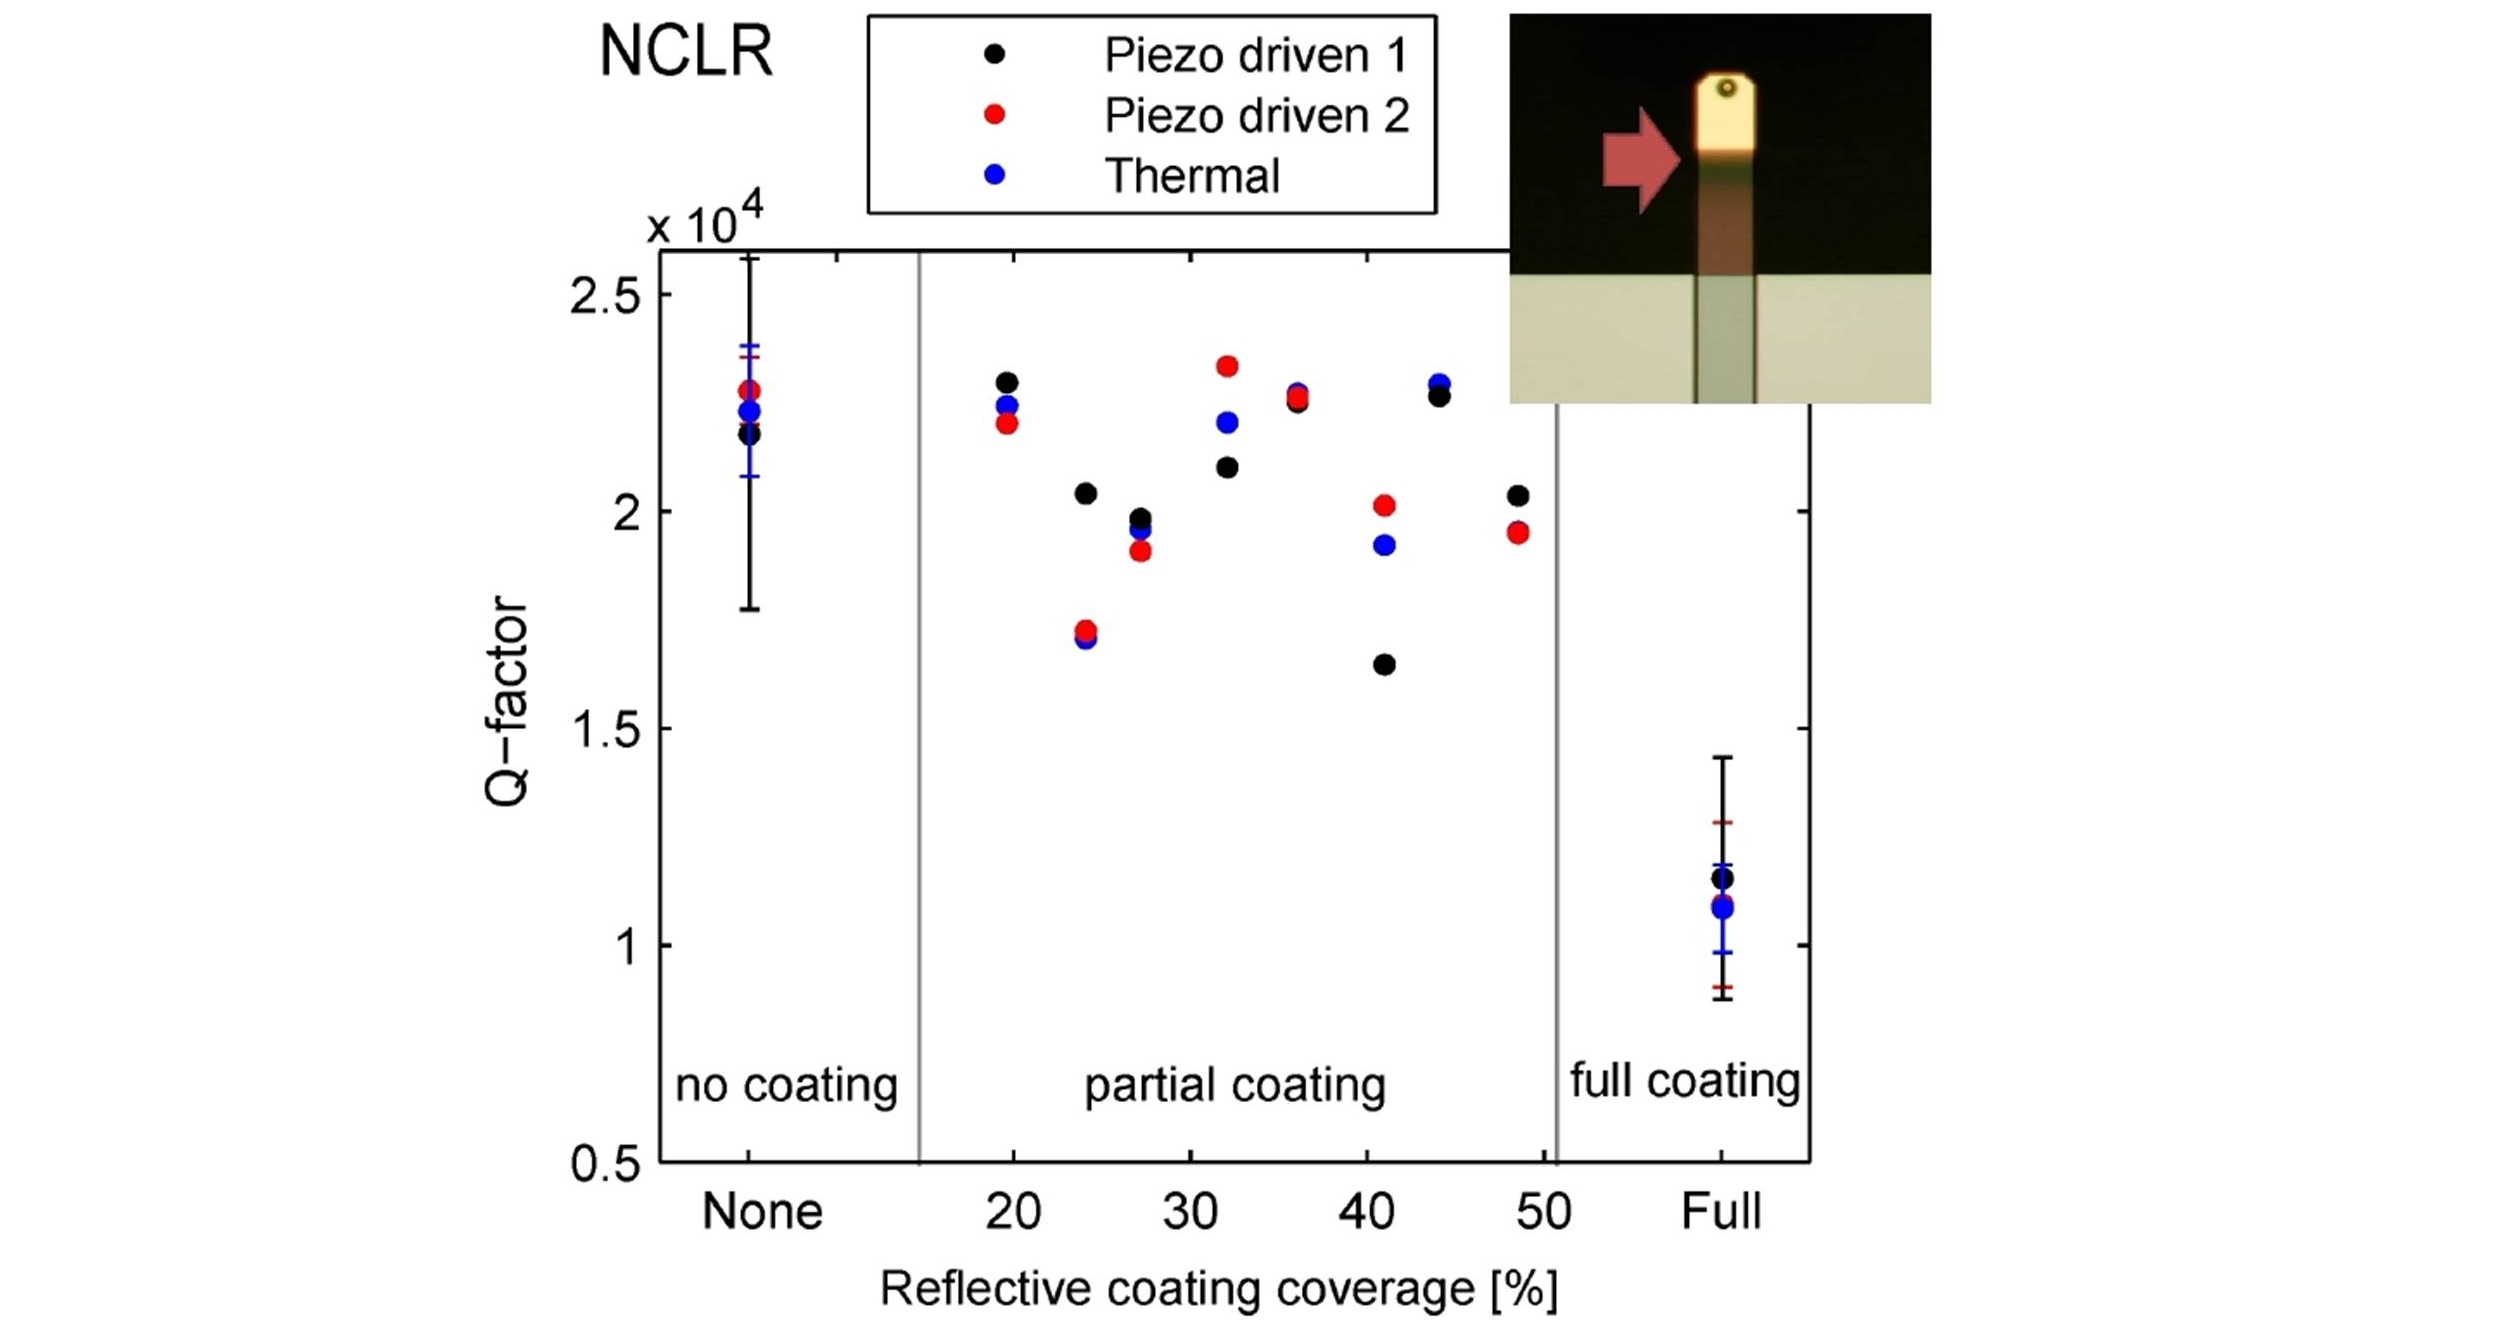 Q-factors of NCLR cantilevers with different coating coverage percentages measured in high vacuum. From: Beilstein J. Nanotechnol. 2015, 6, 1450–1456.